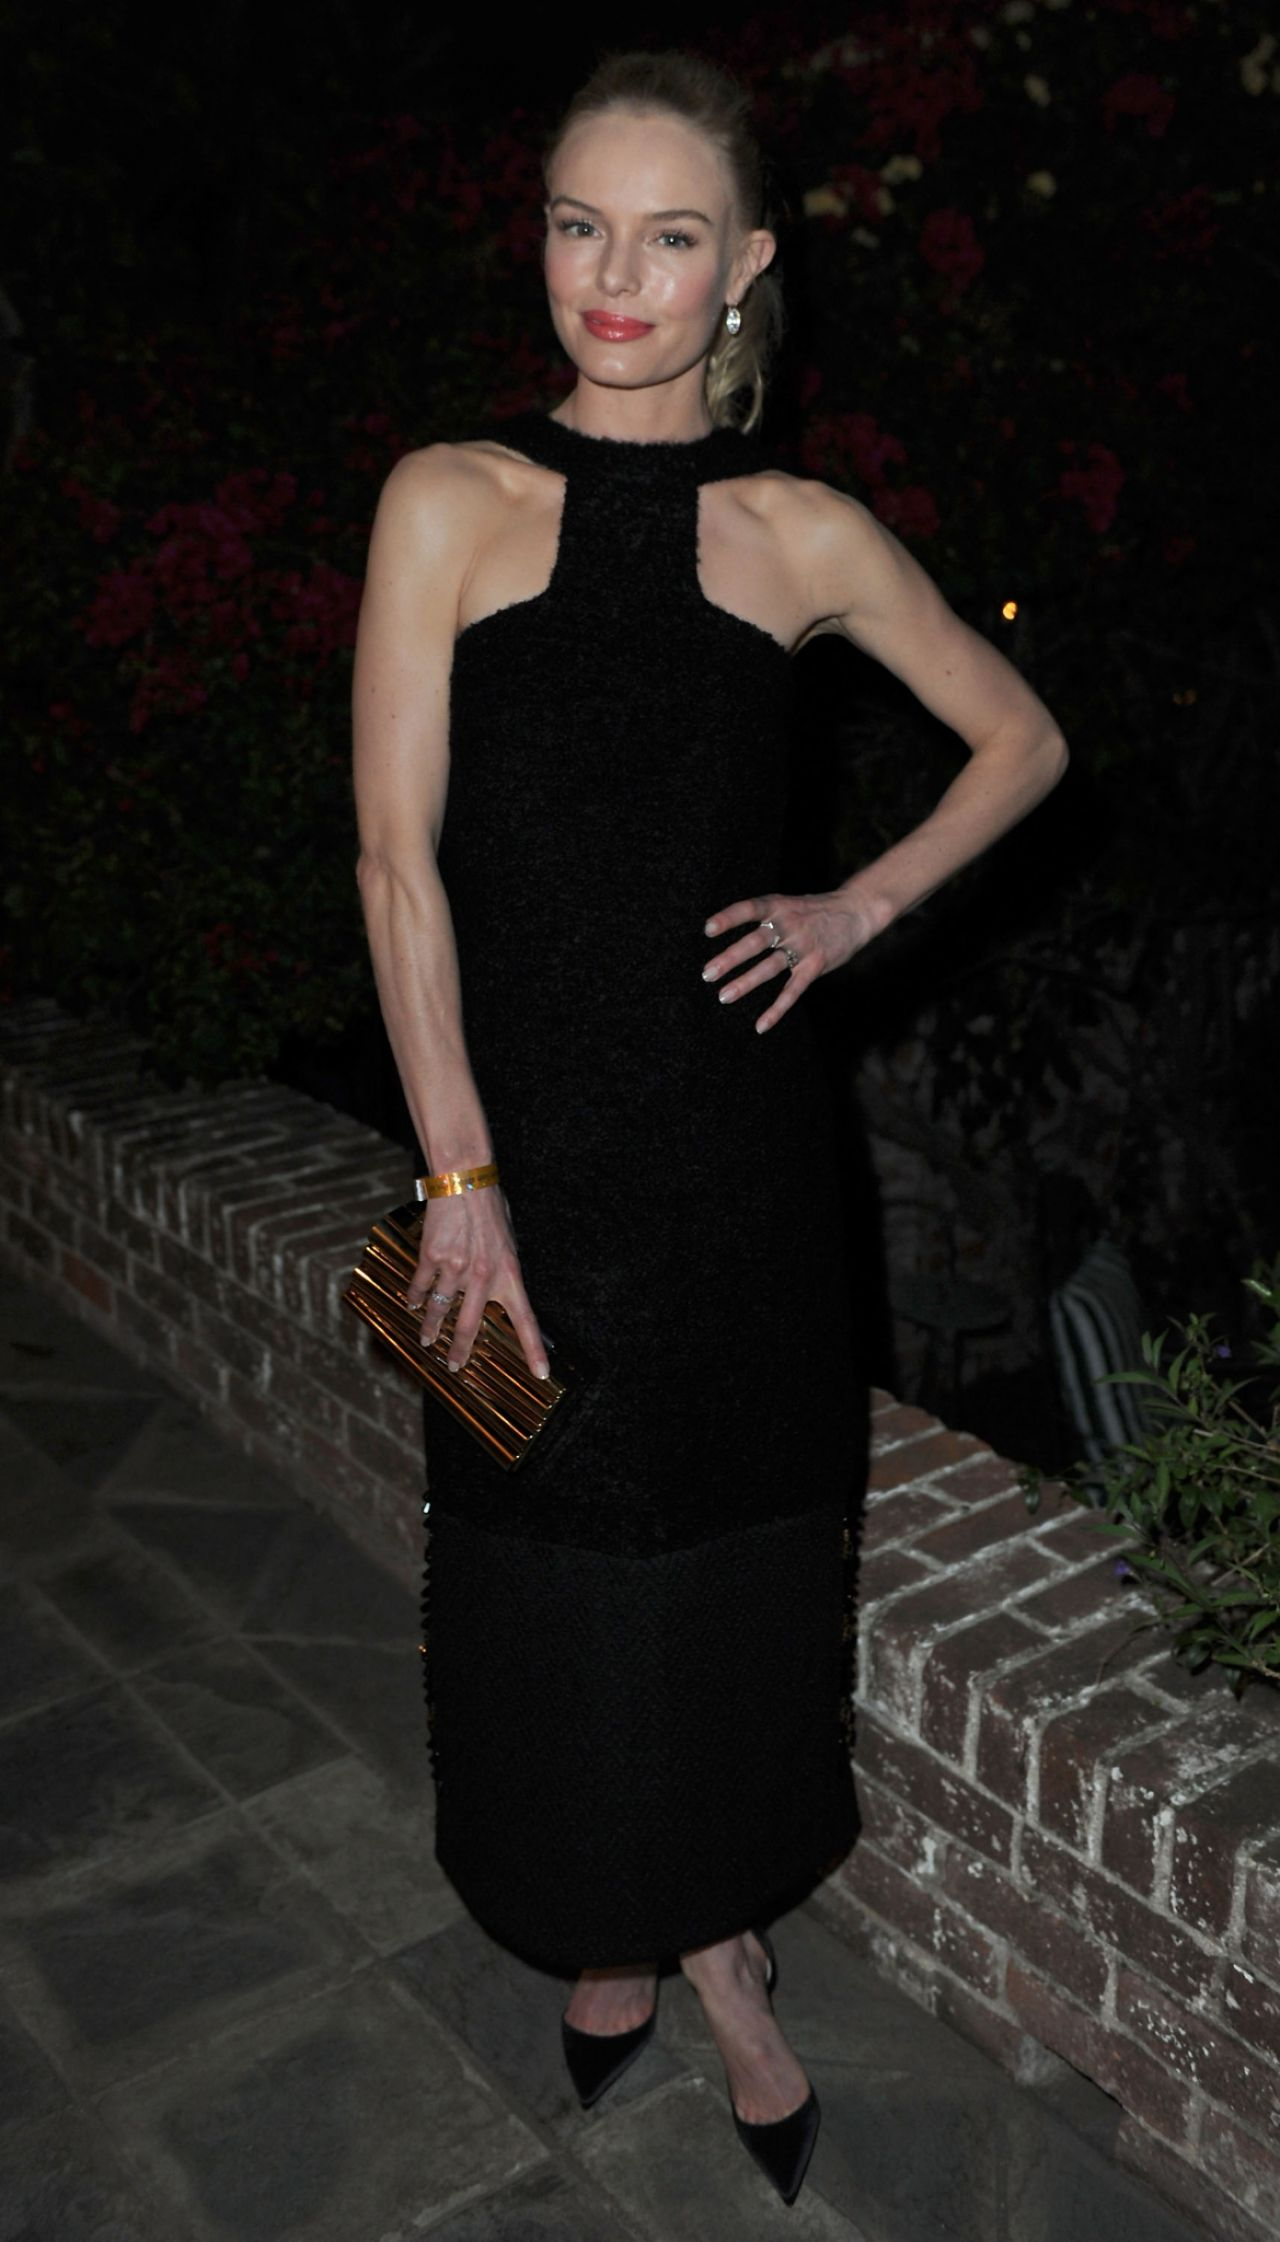 kate-bosworth-dana-brunetti-s-pre-oscar-2016-party-hosted-by-steve-shaw-in-los-angeles-ca-2